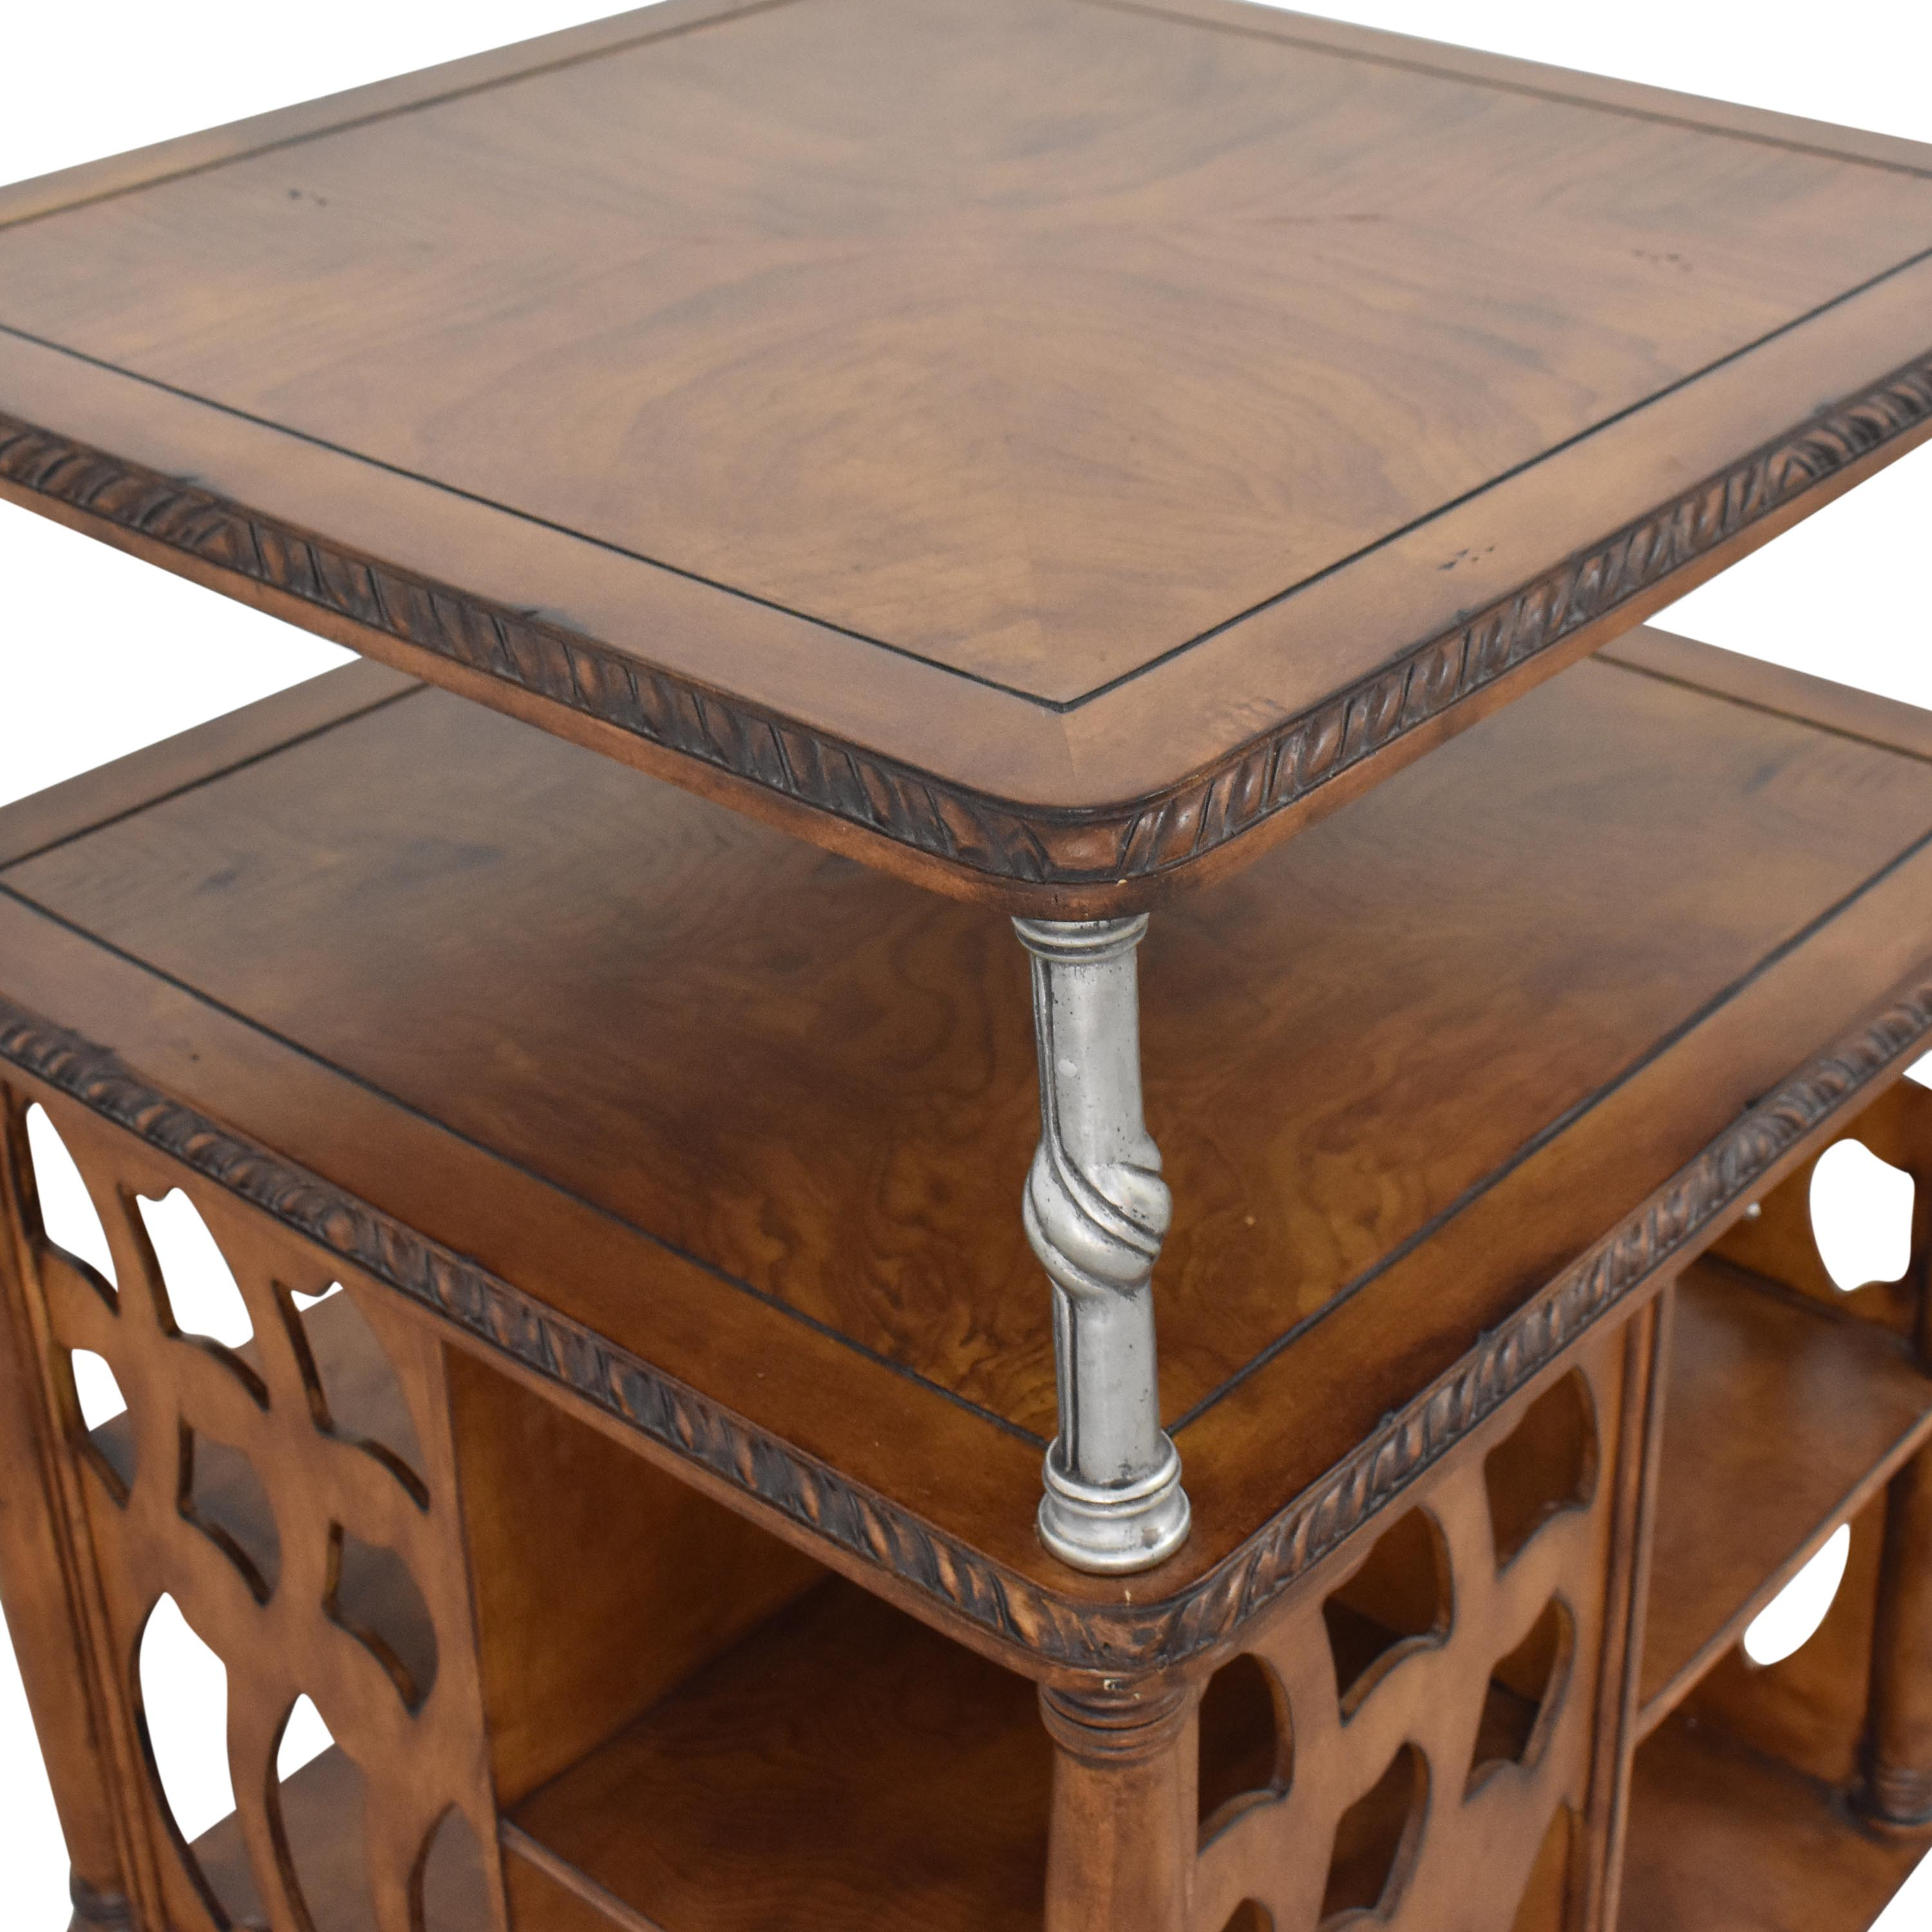 Vintage Style Swivel Accent Table second hand